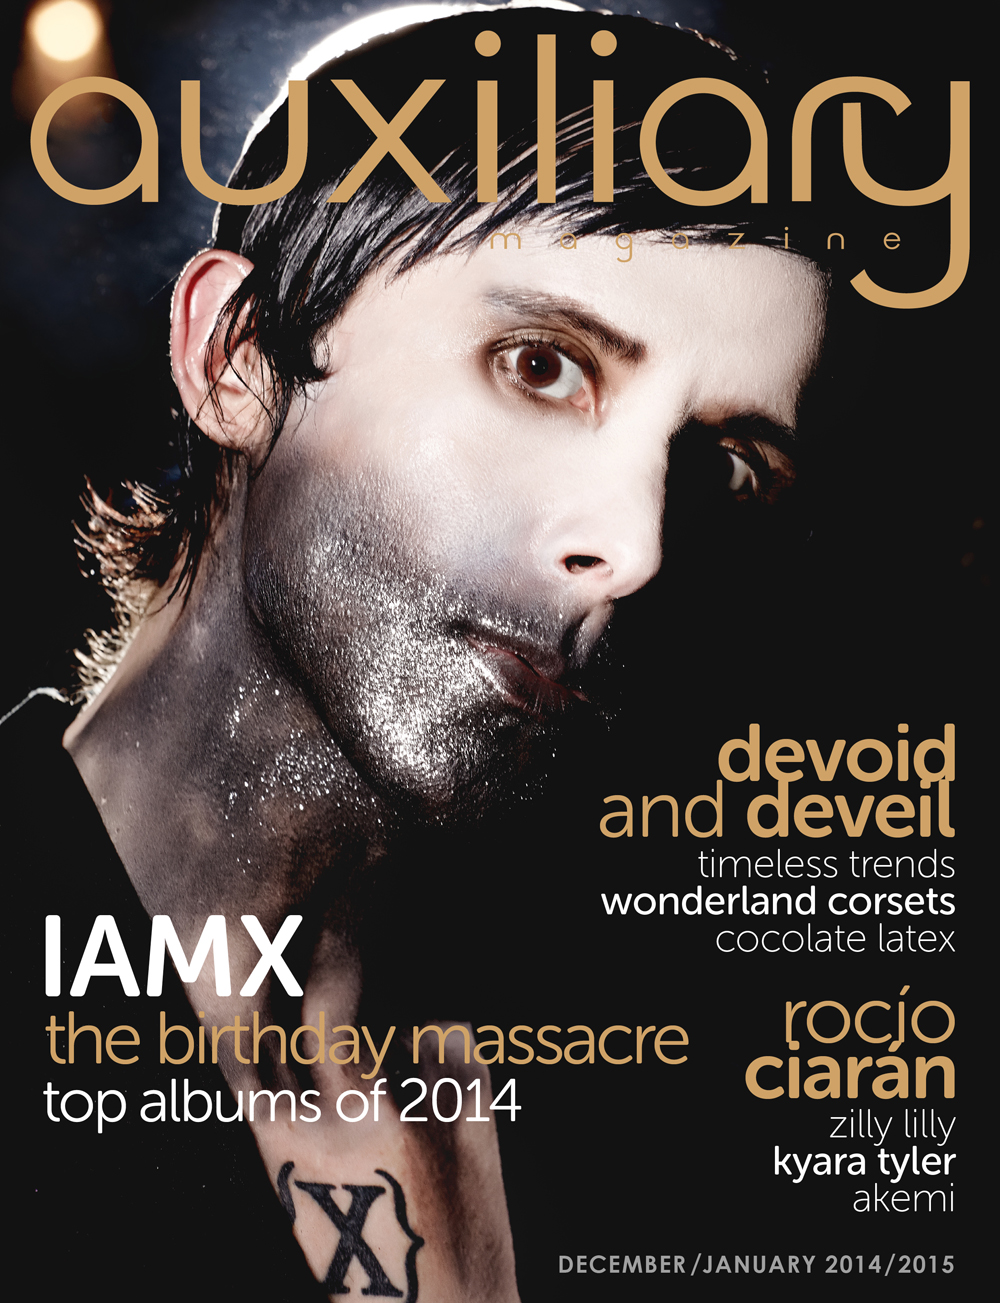 Auxiliary Magazine December/January 2014/215 cover IAMX